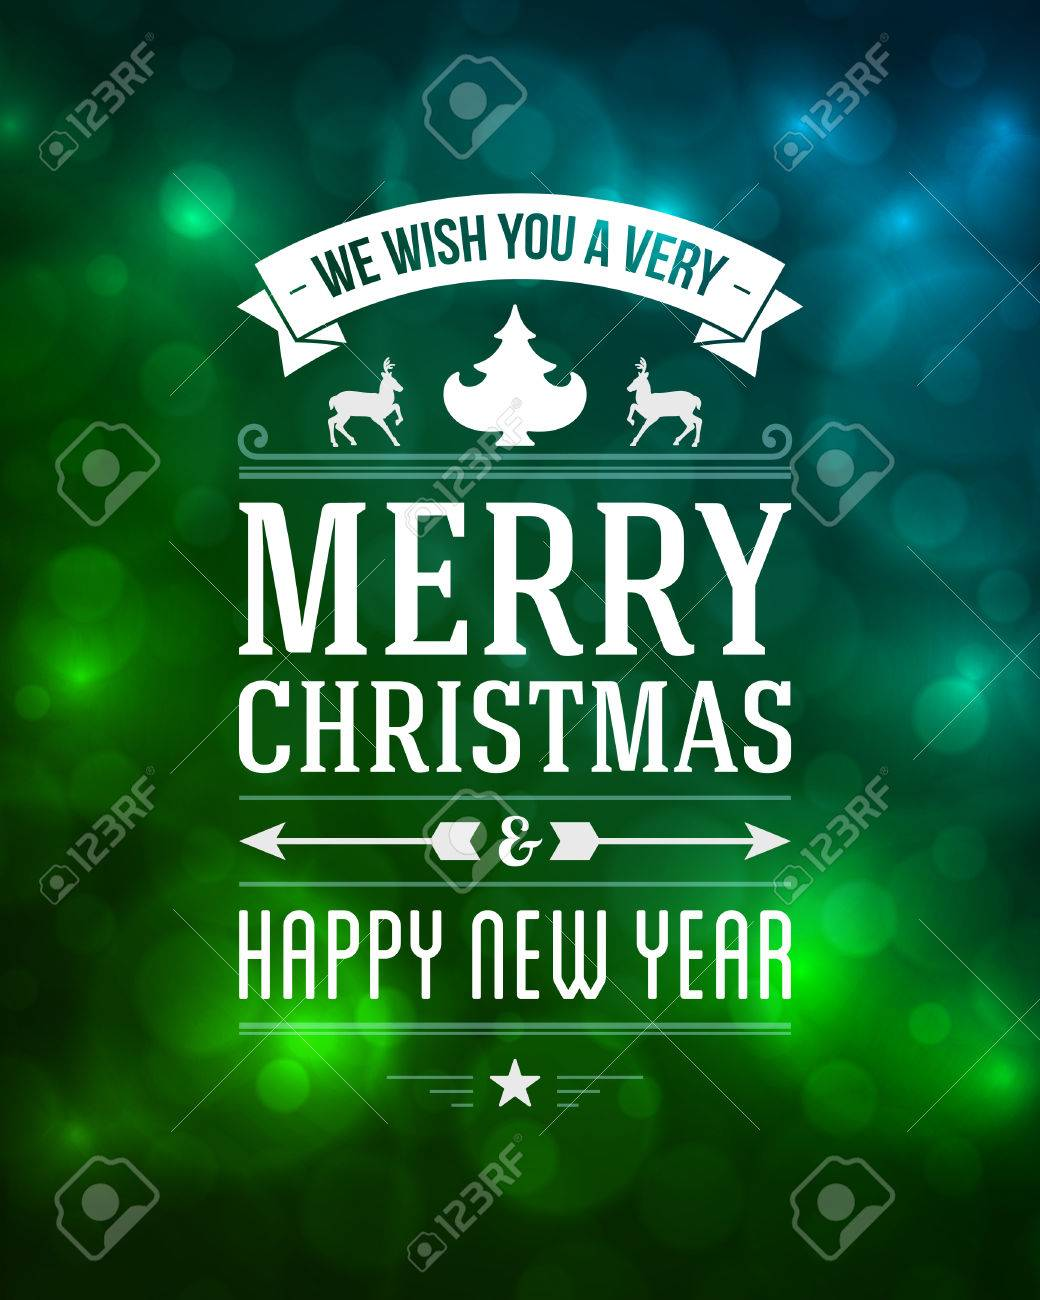 Merry Christmas message and light background with snowflakes Stock Vector - 22524773